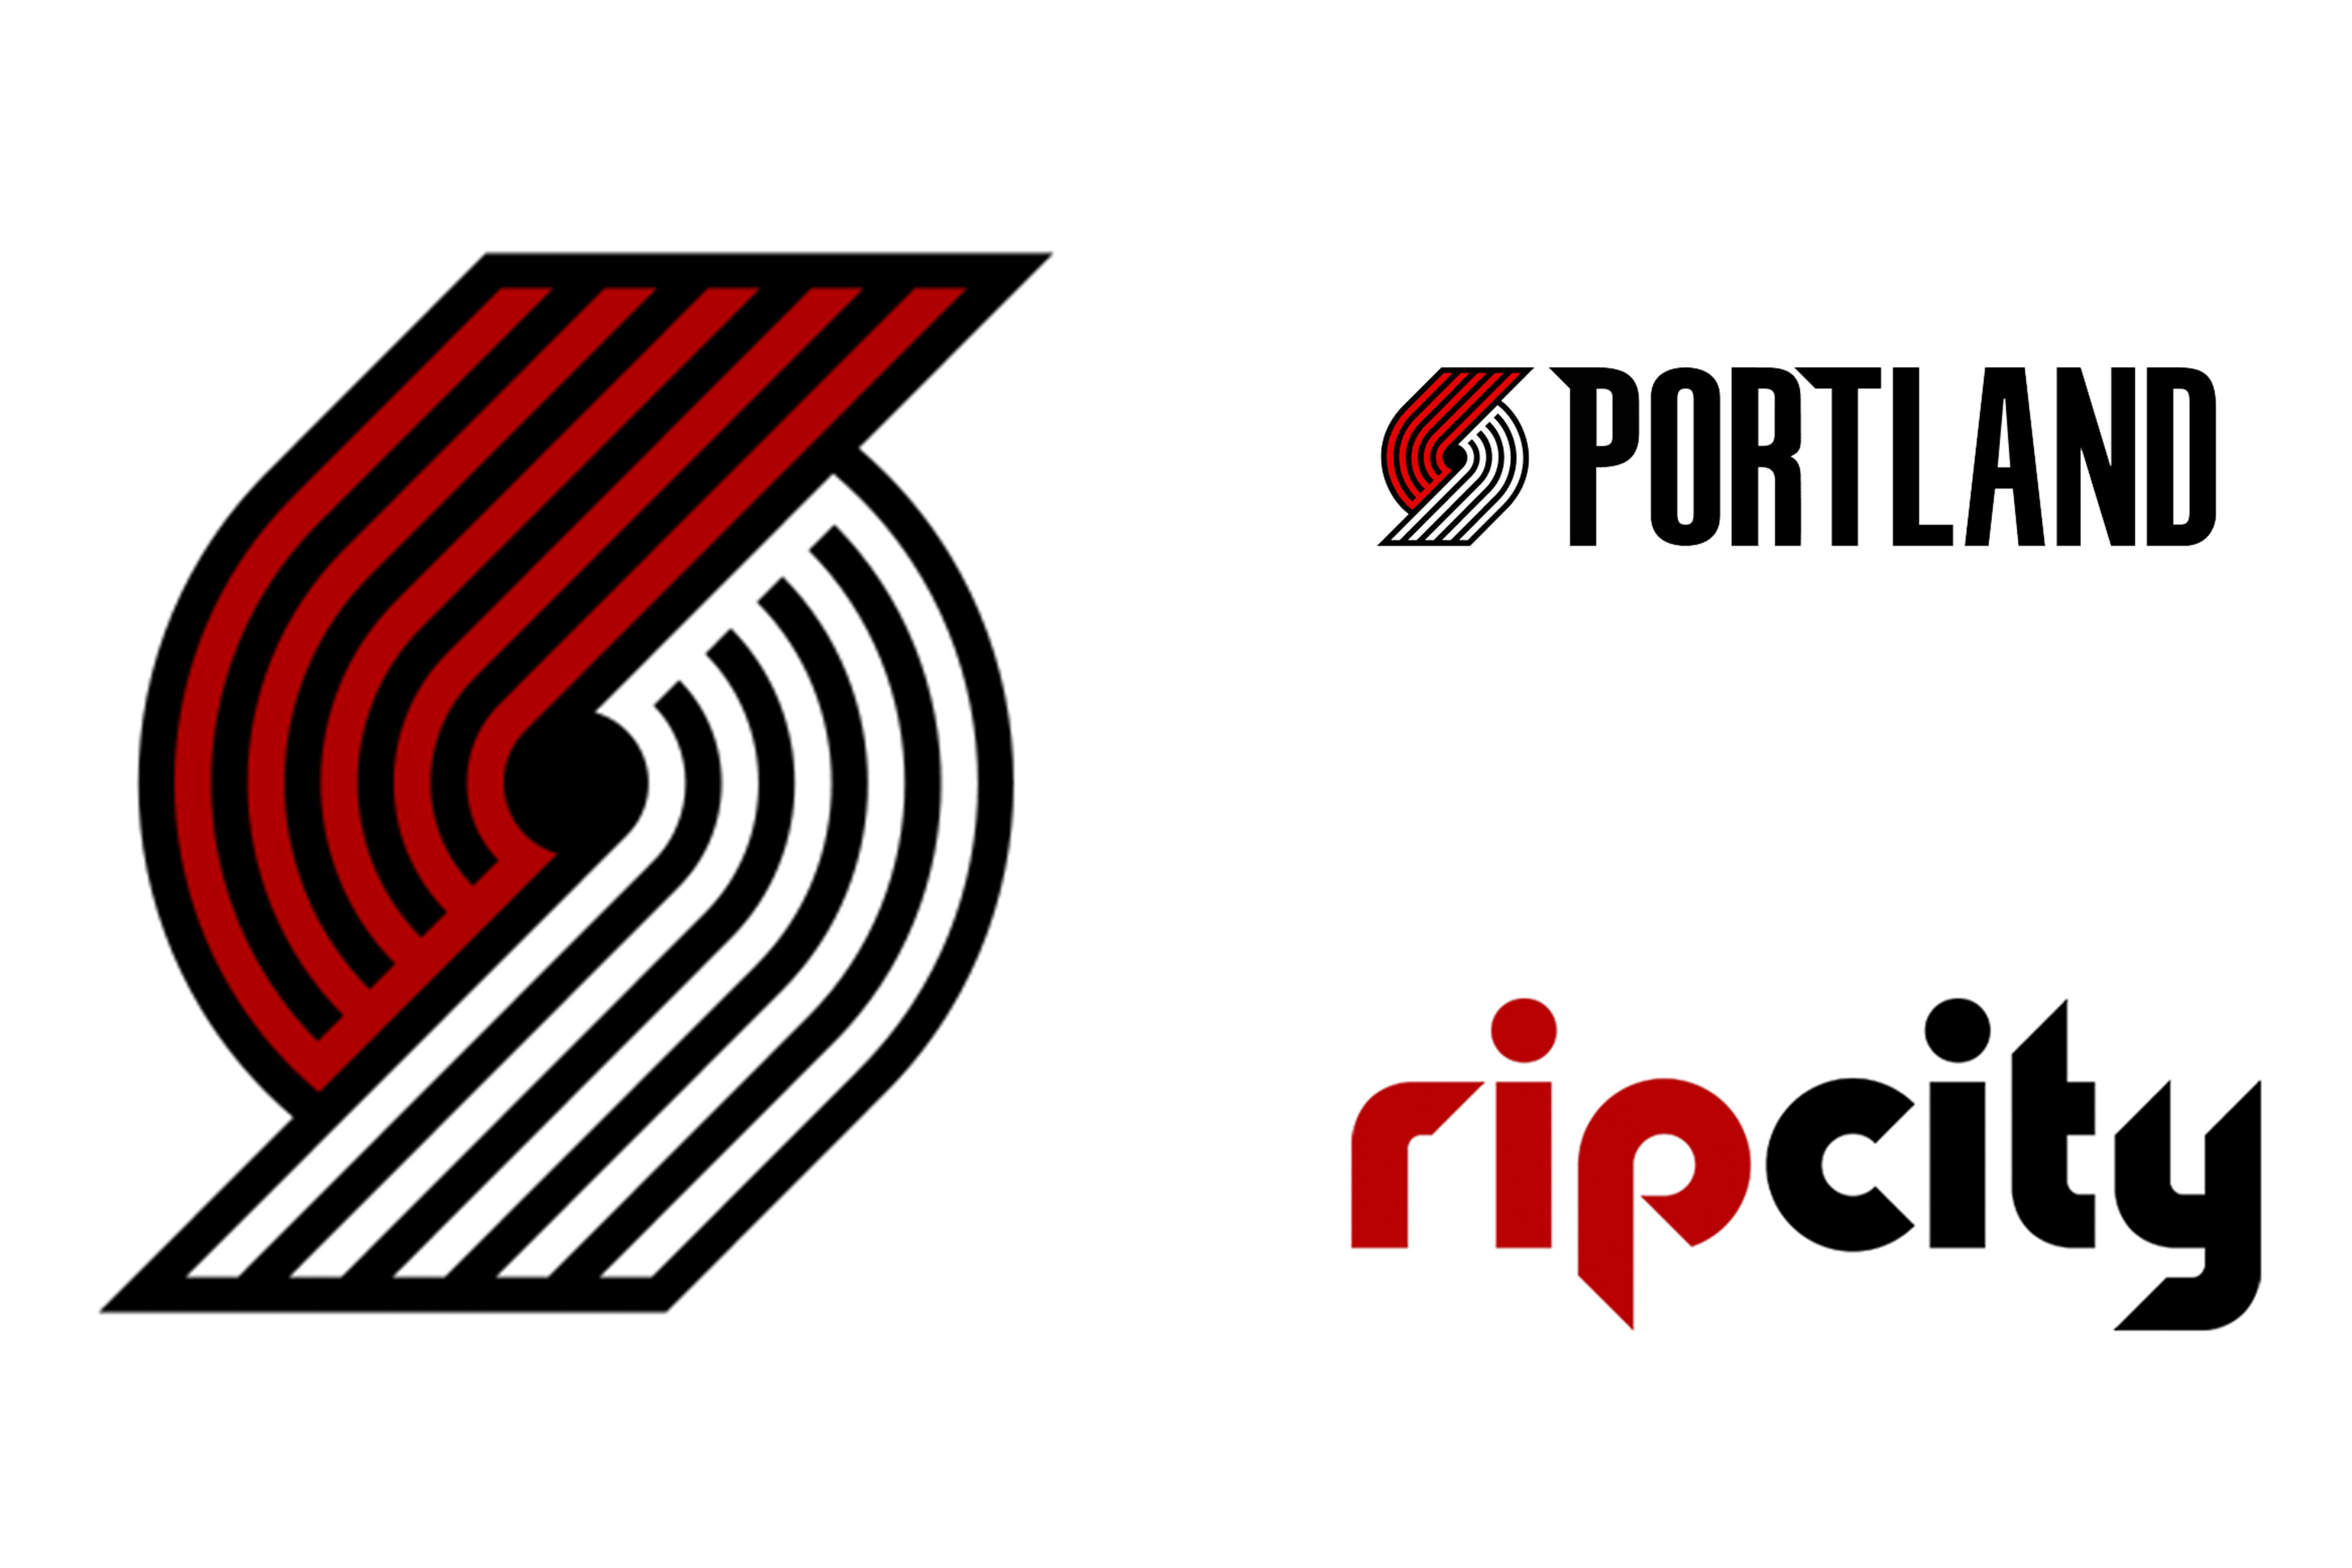 New Trail Blazers Logos